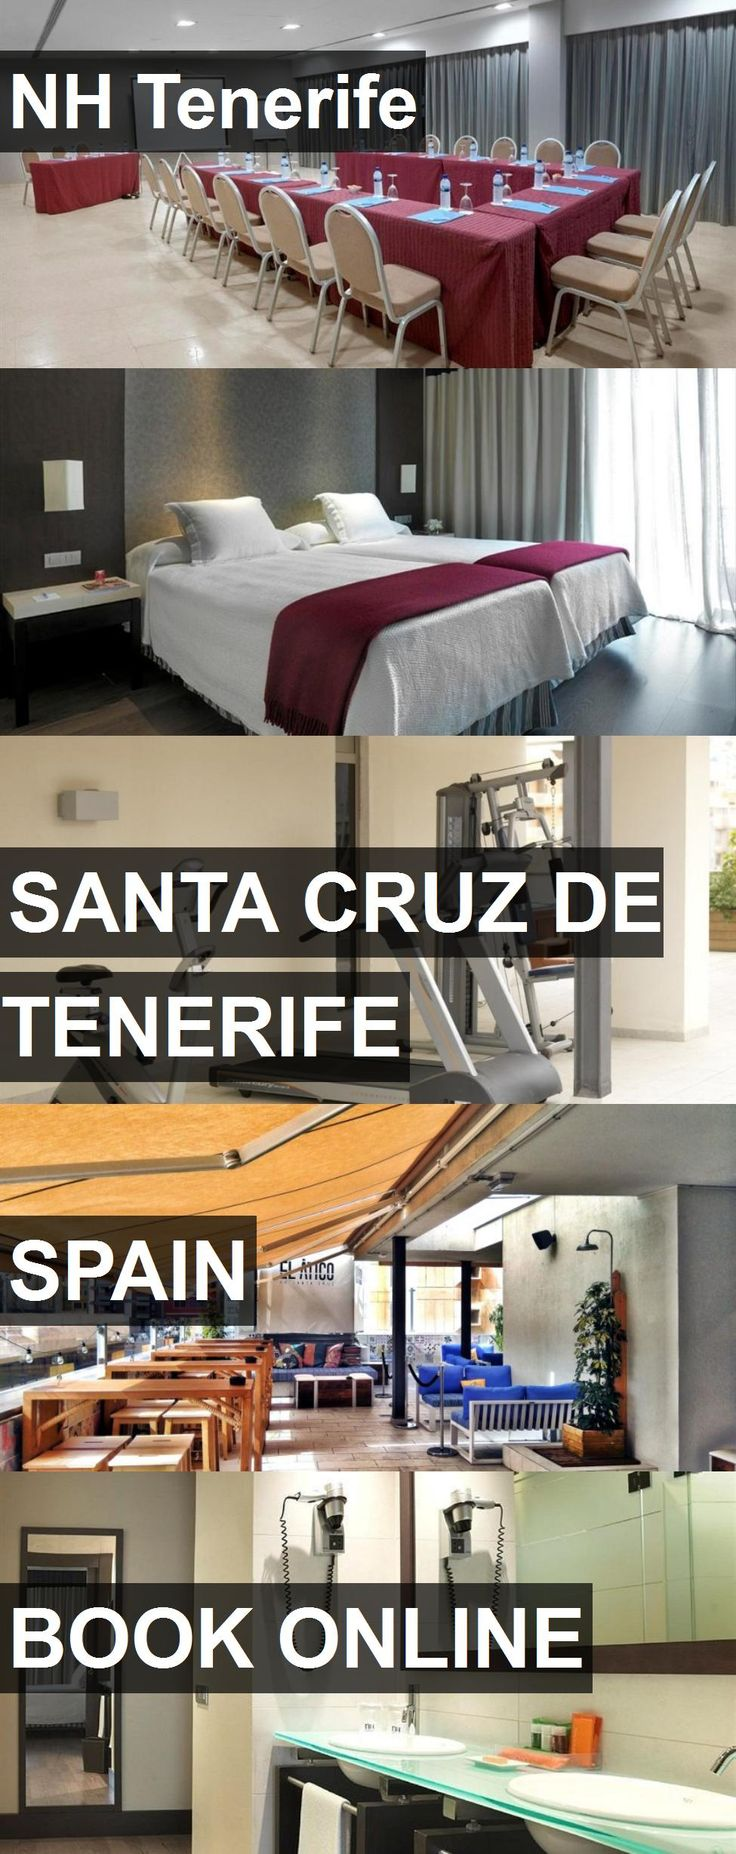 Hotel NH Tenerife in Santa Cruz de Tenerife, Spain. For more information, photos, reviews and best prices please follow the link. #Spain #SantaCruzdeTenerife #NHTenerife #hotel #travel #vacation